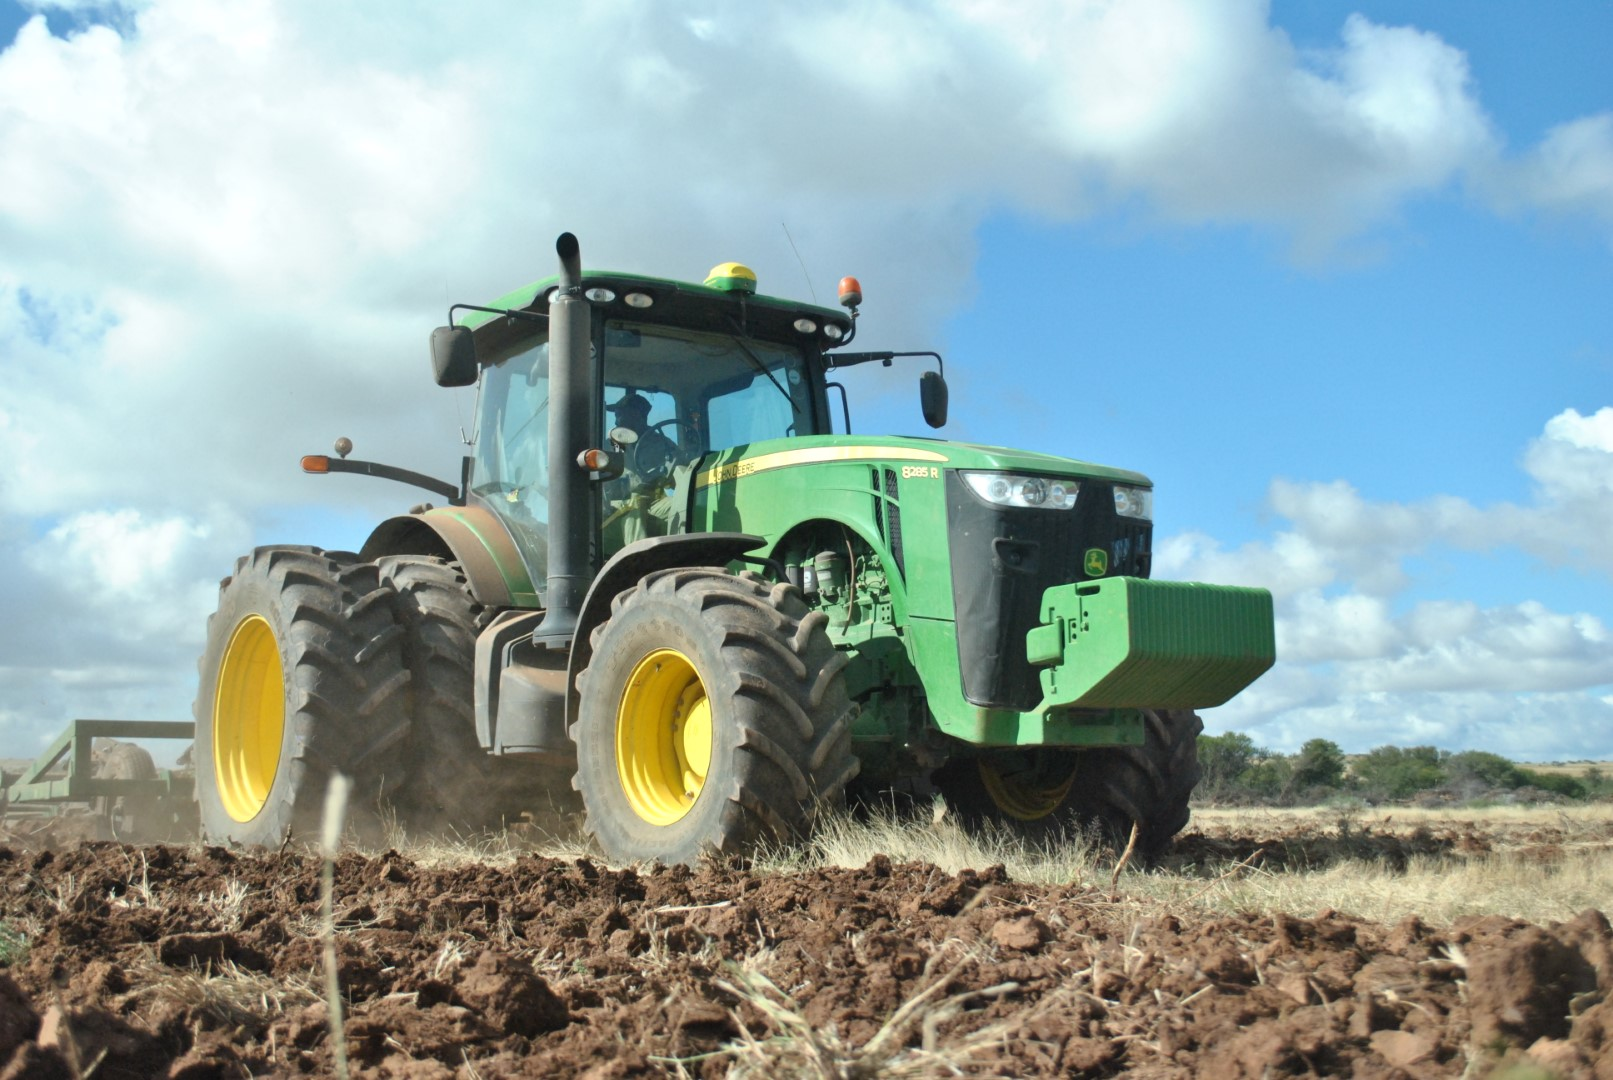 Green tractor ploughing a field